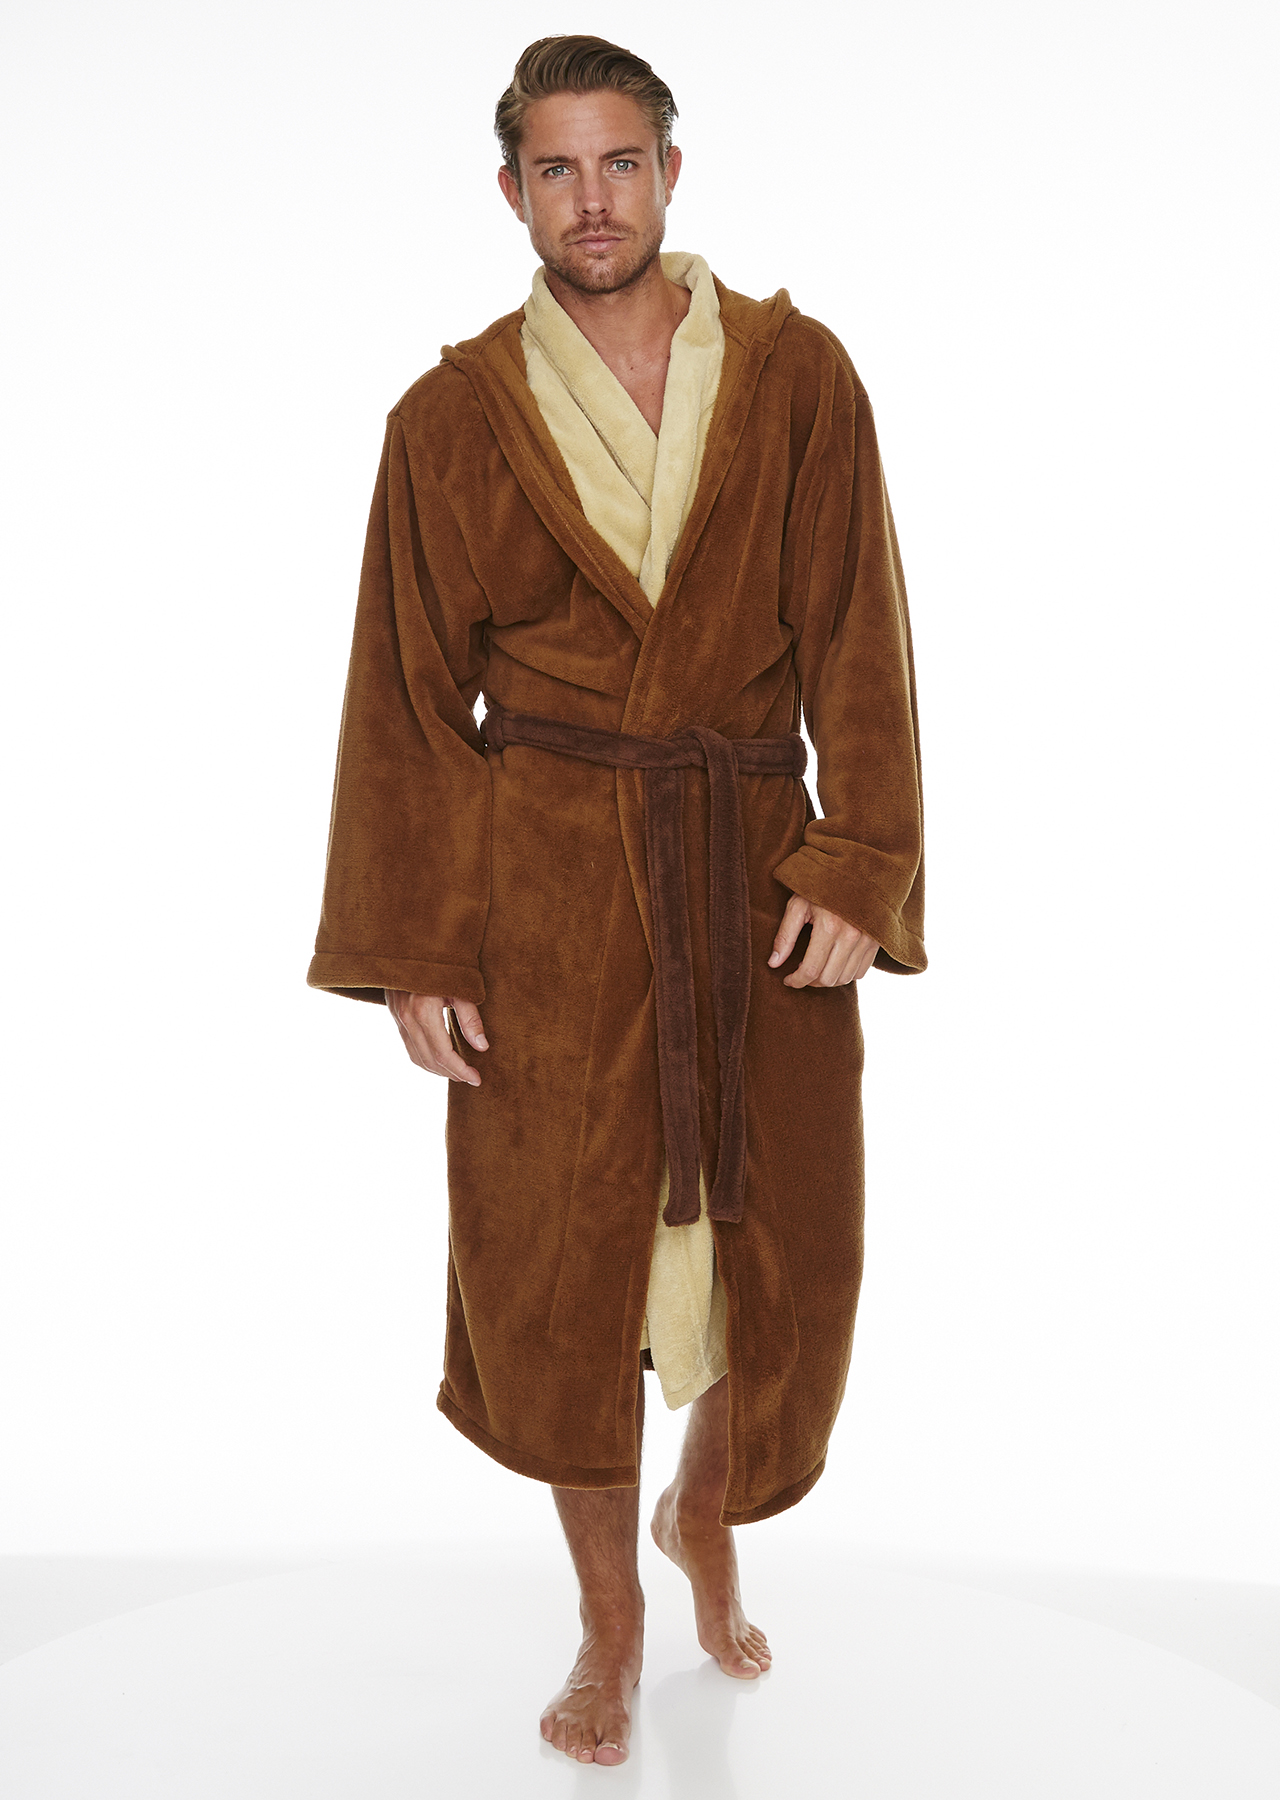 Star Wars Jedi Outfit Adult Fleece Bathrobe – Groovy UK